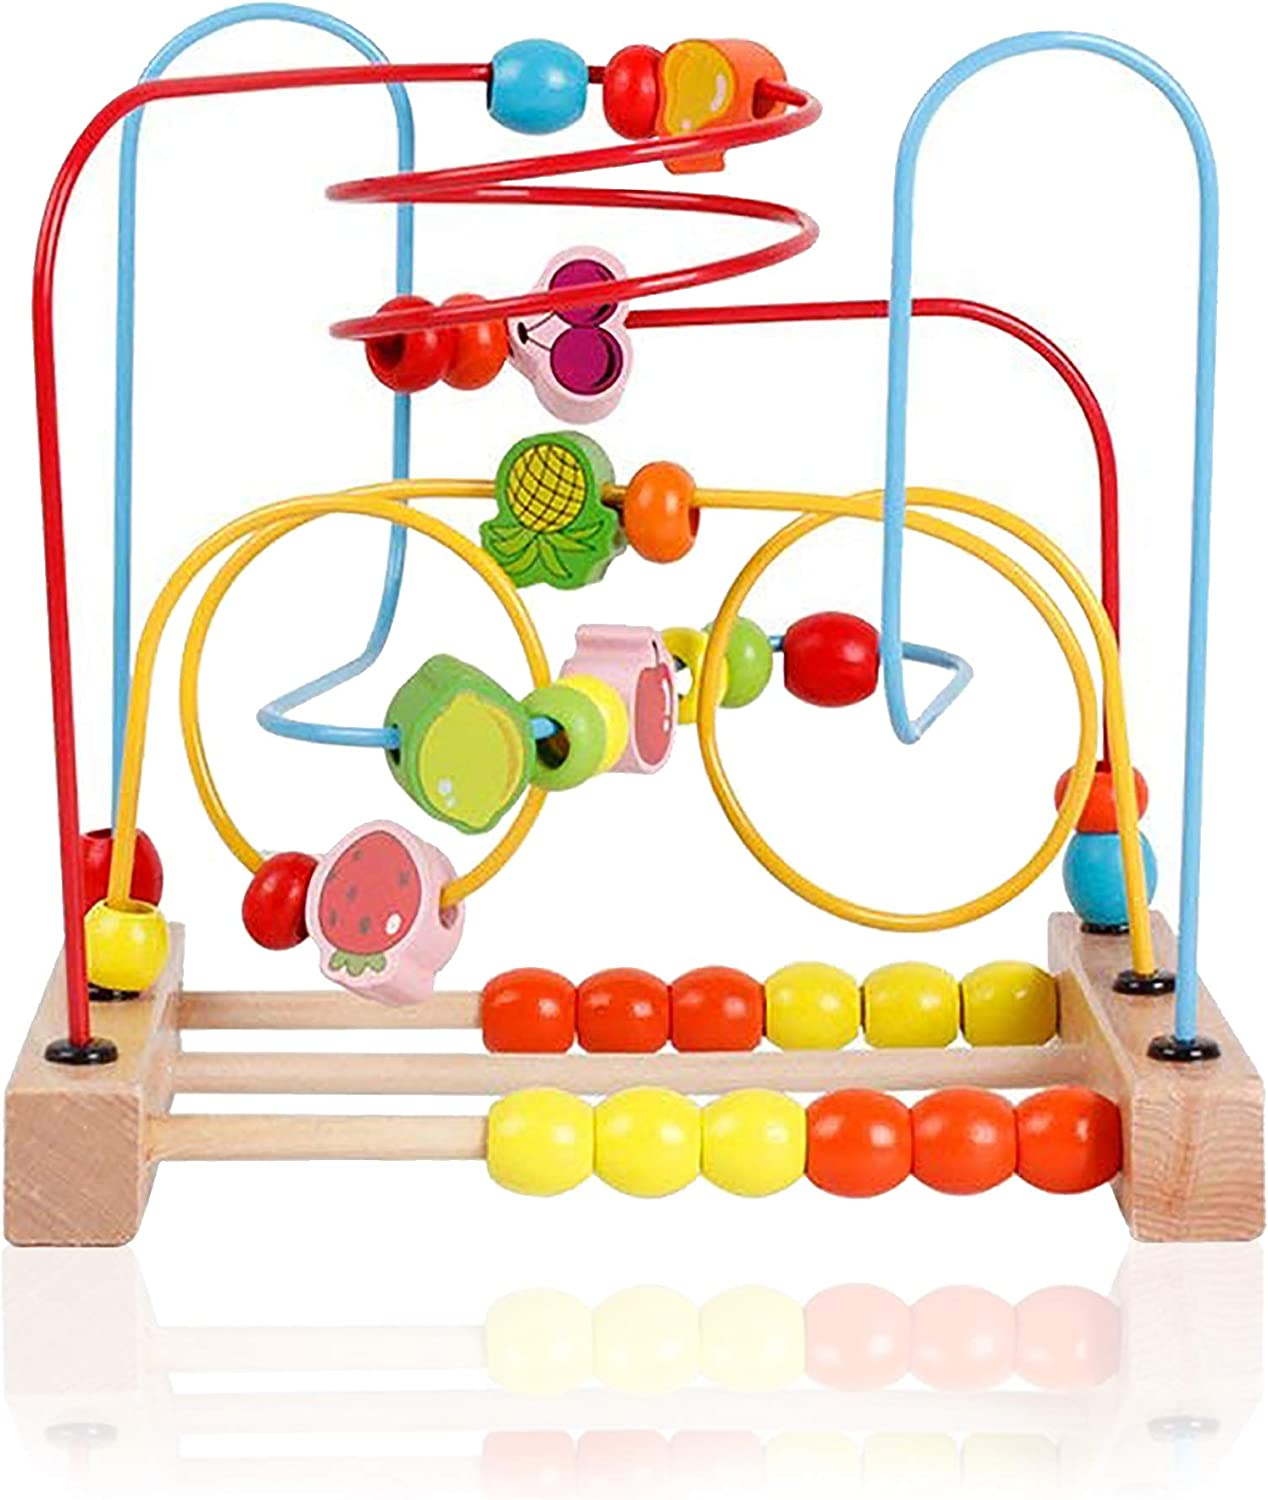 KIDDERY TOYS Bead Maze Educational Toy for Toddlers & Kids Bead Roller Coaster & Number Counting Toy with Bright Colors (Medium Size)